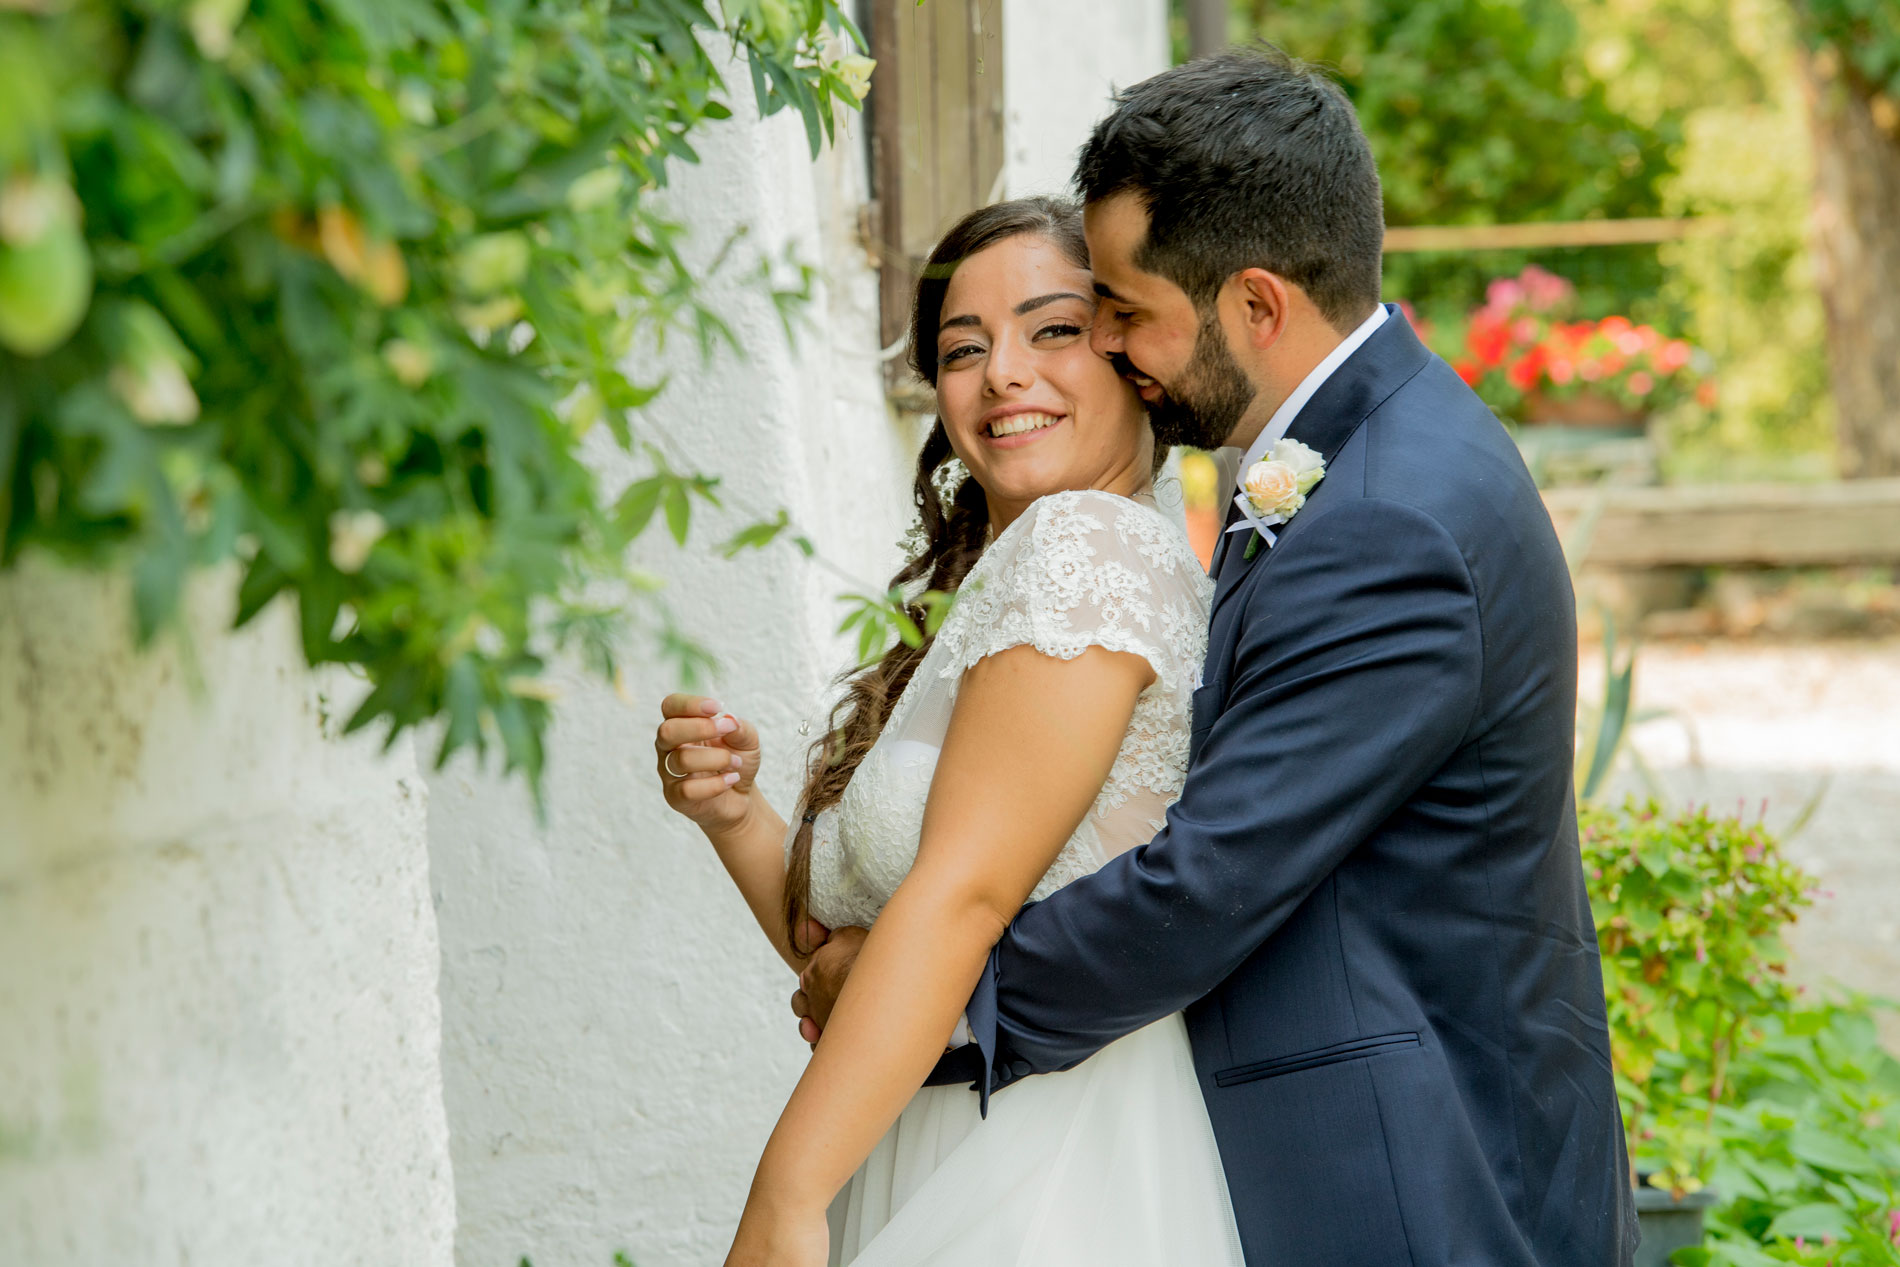 ivano-di-maria-wedding-photographer-giu-eman-12